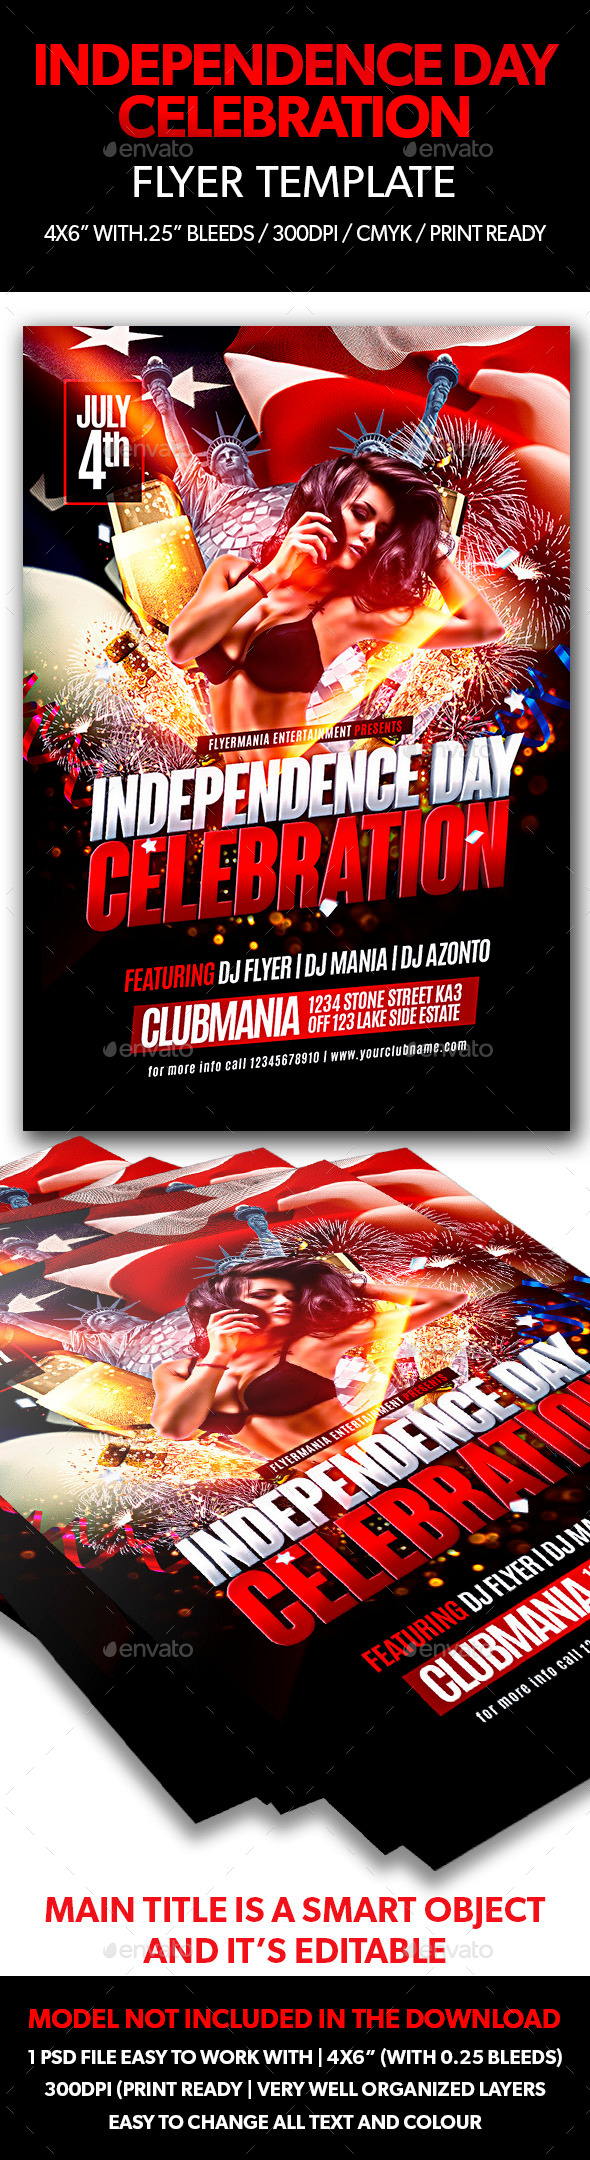 Independence Day Celebration Flyer Template - Flyers Print Templates